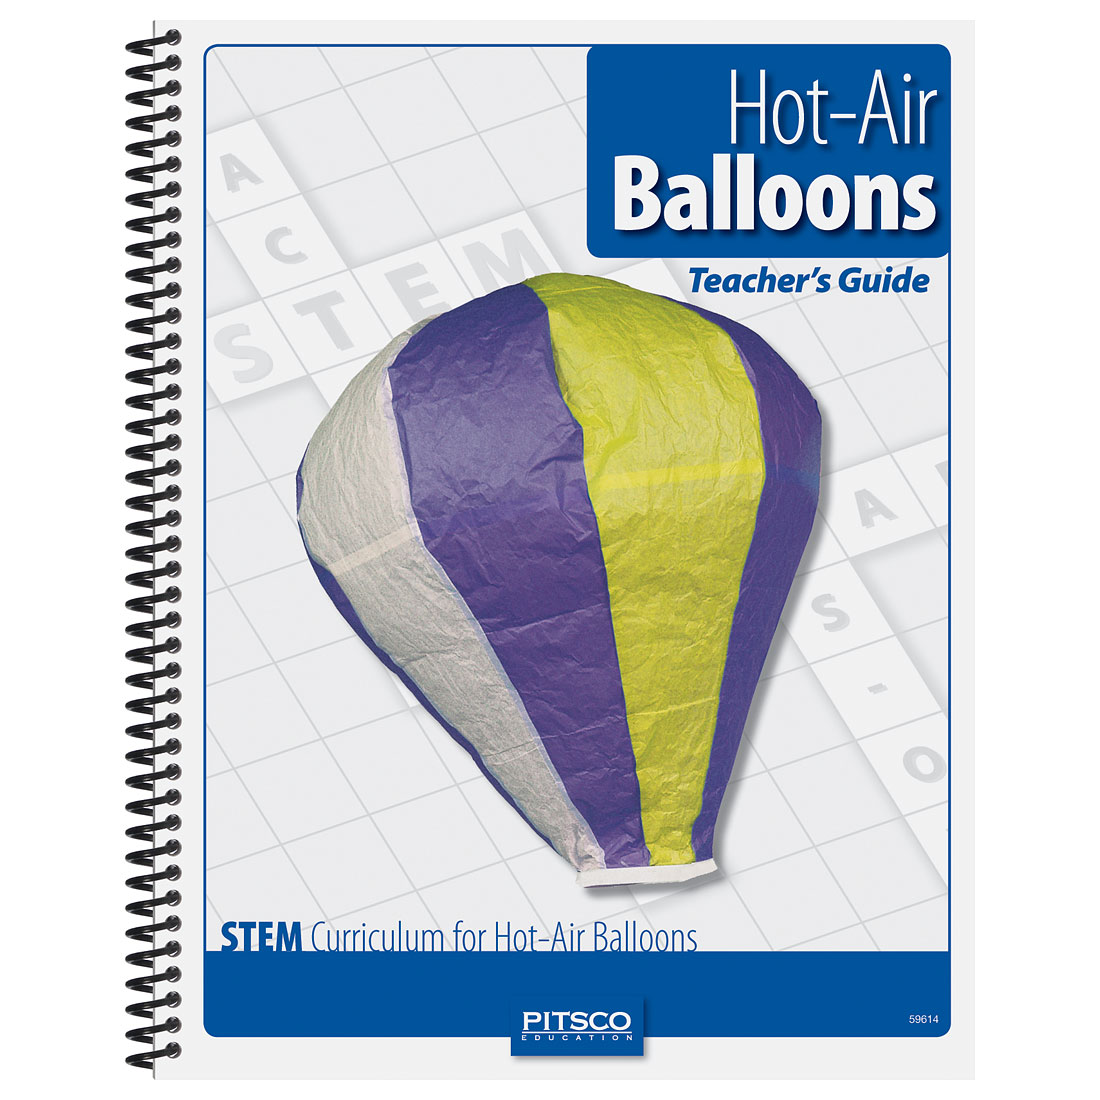 Hot-Air Balloons Teacher\'s Guide (W59614)